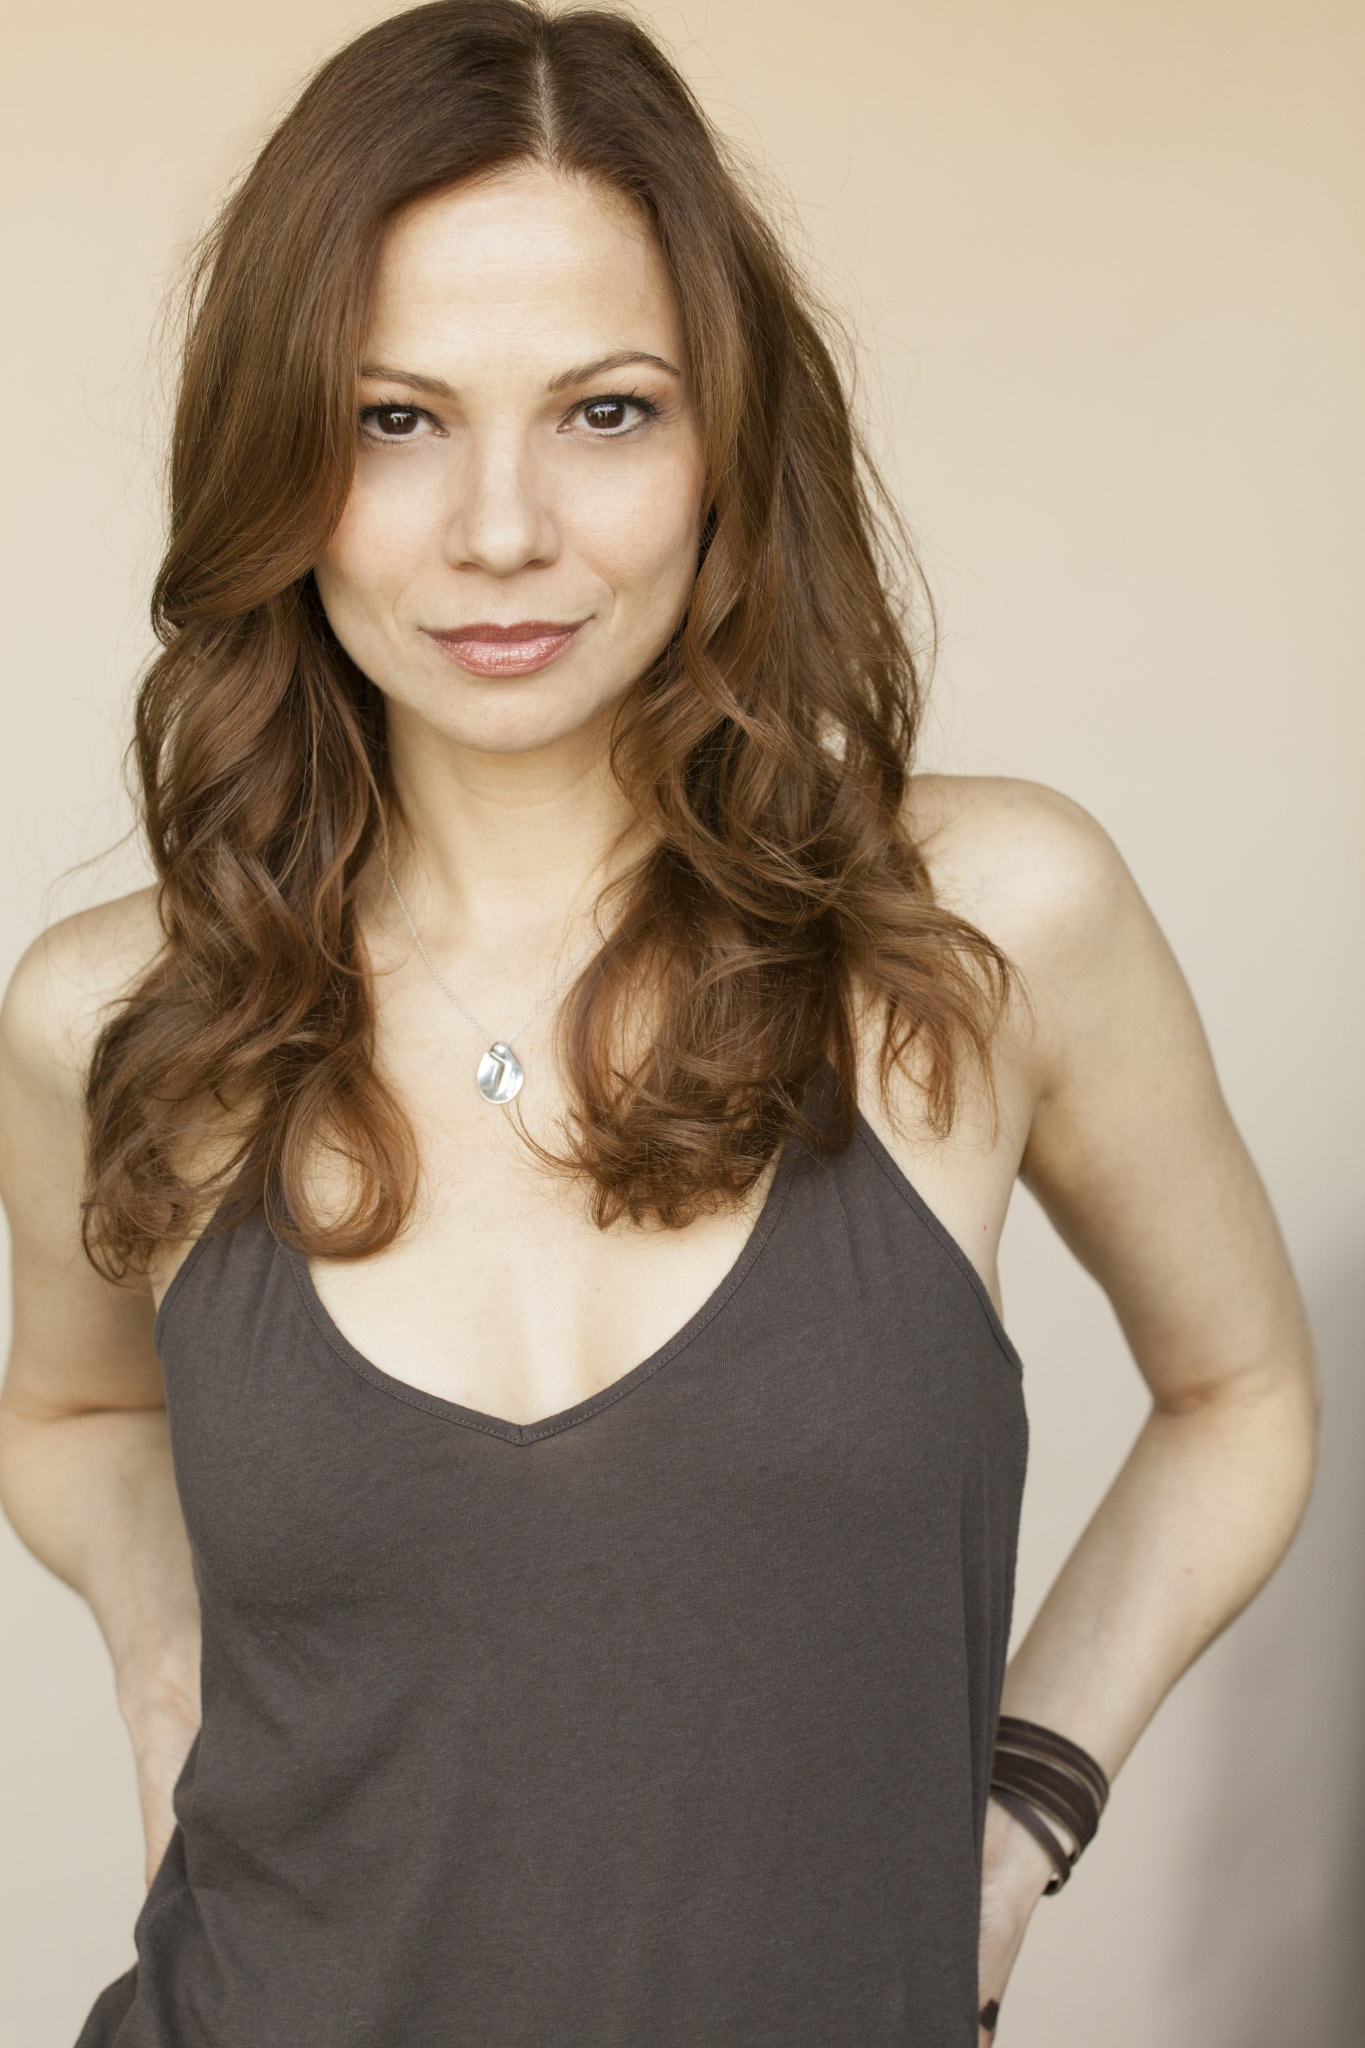 Tamara Braun For mobile